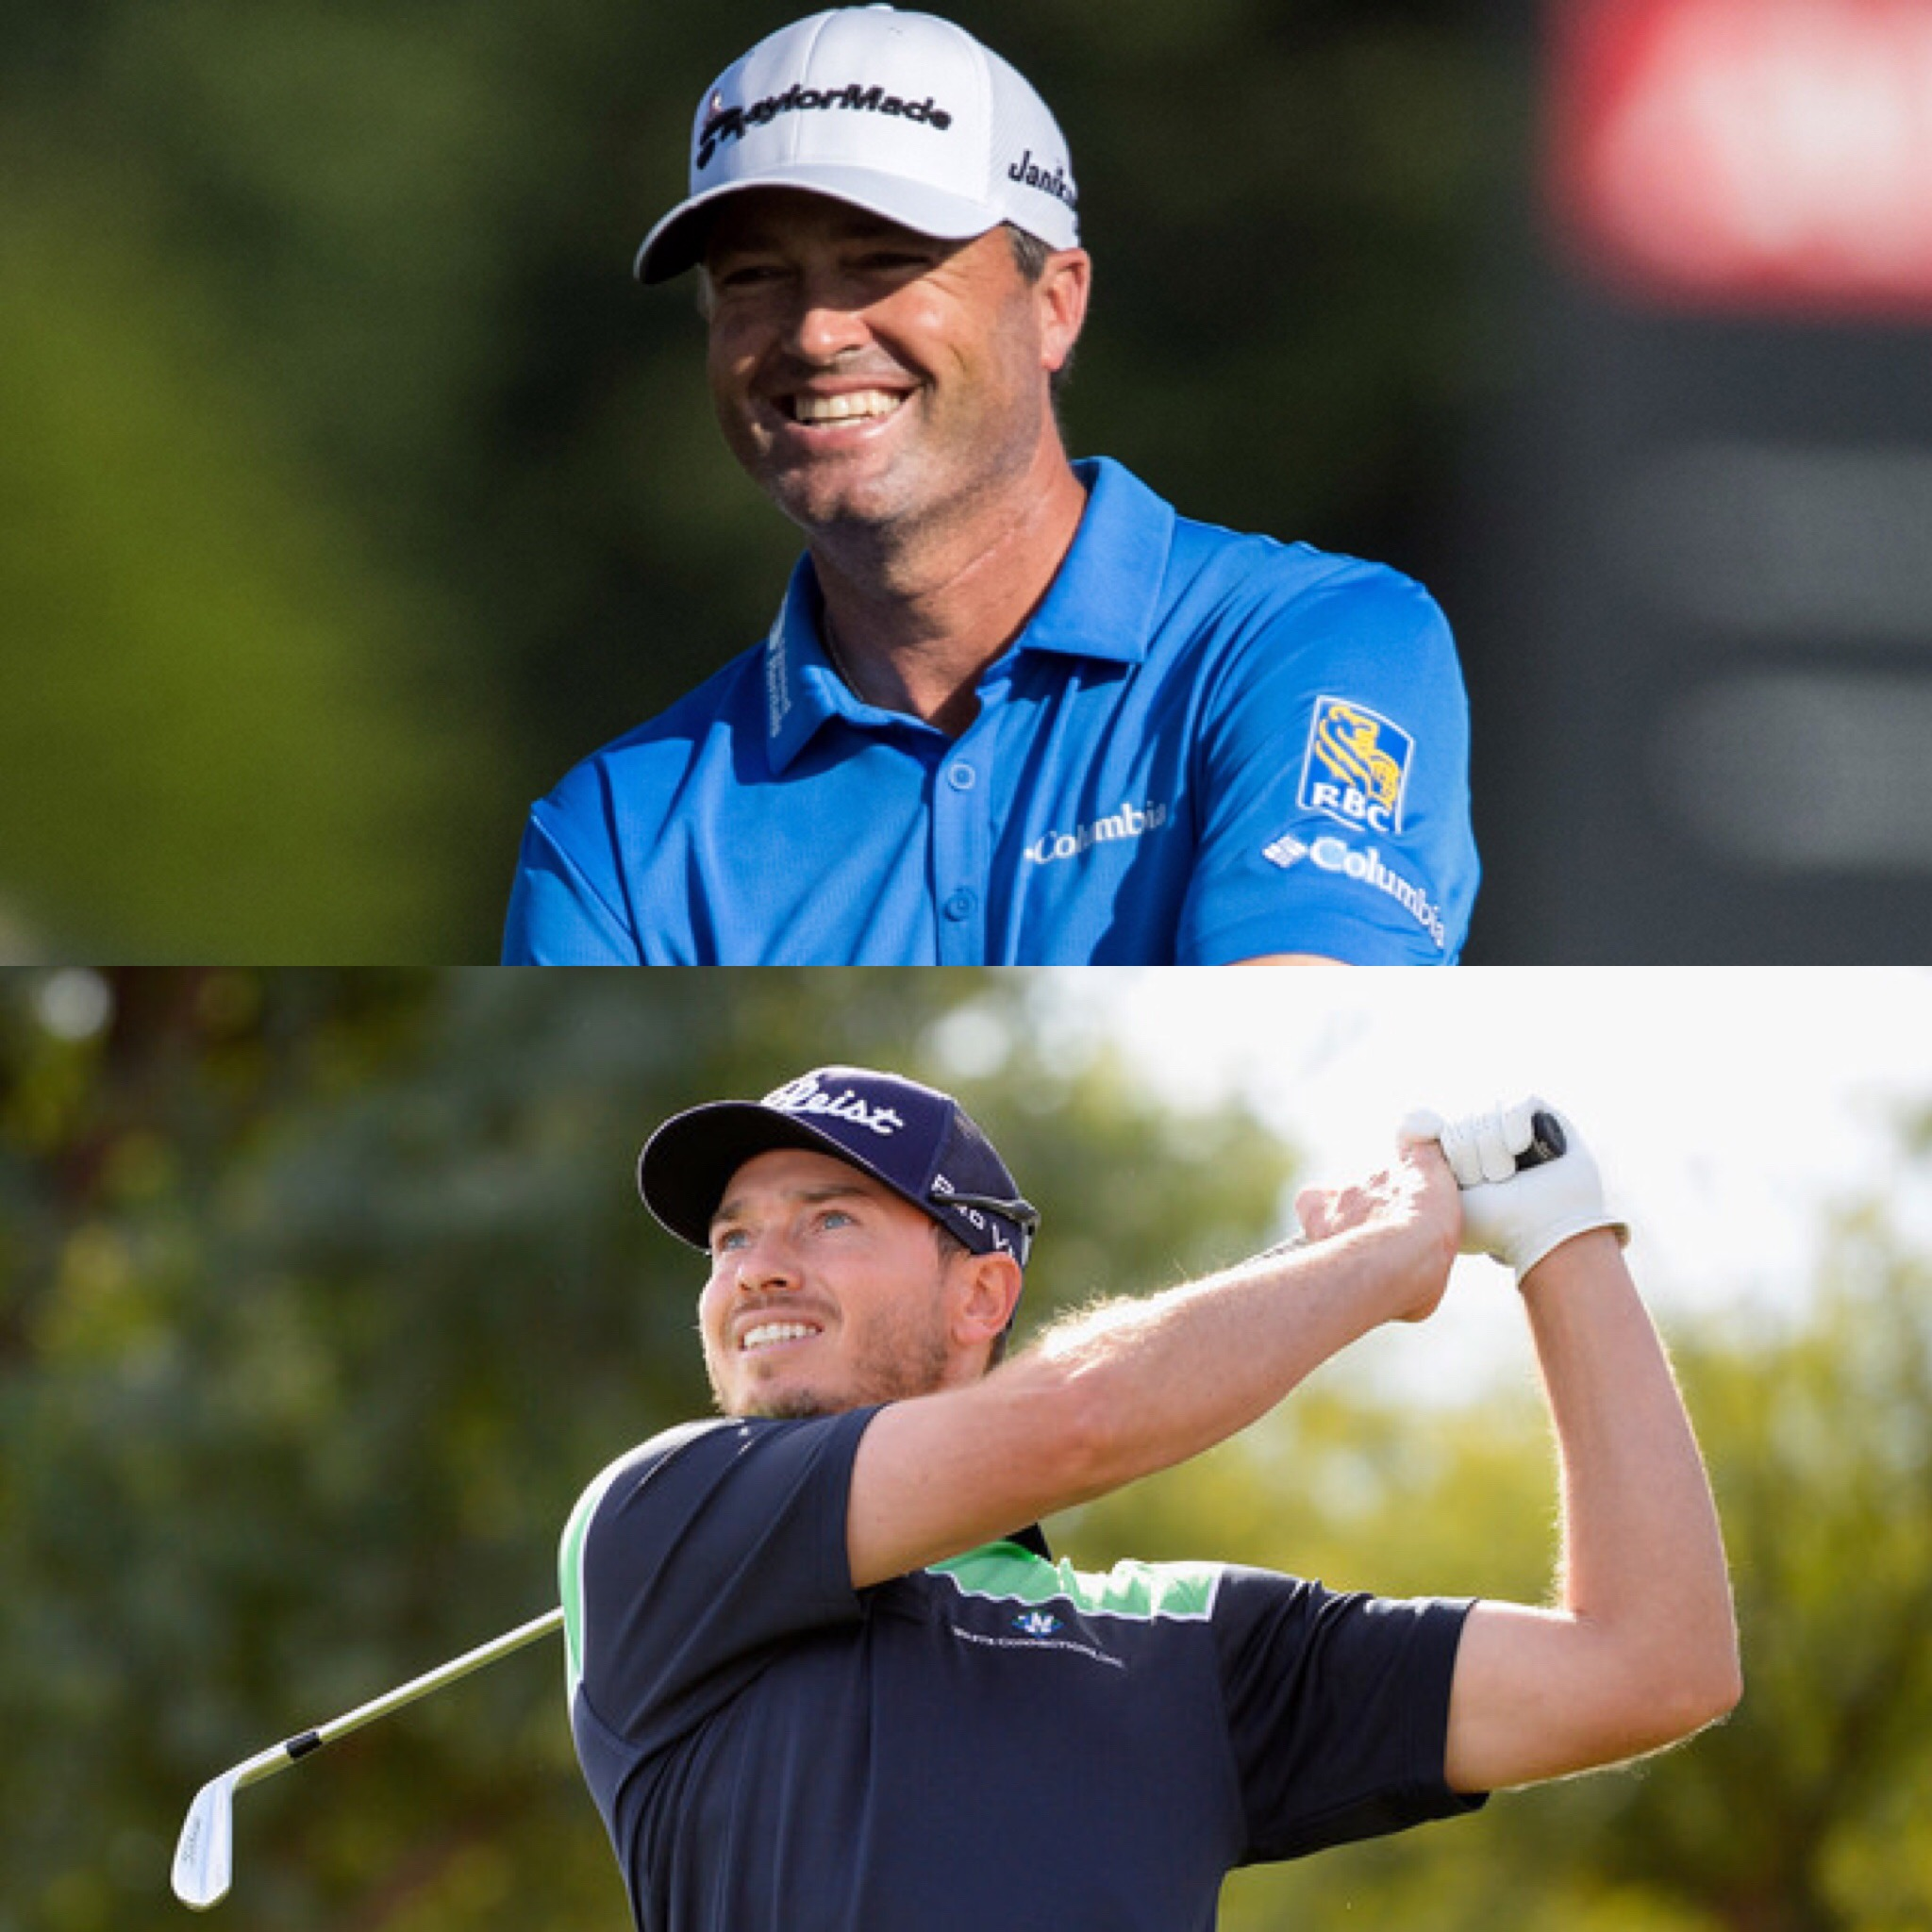 FedExCup Playoffs - Dell Technologies Championship with PGA TOUR Players Ryan Palmer & Bronson Burgoon